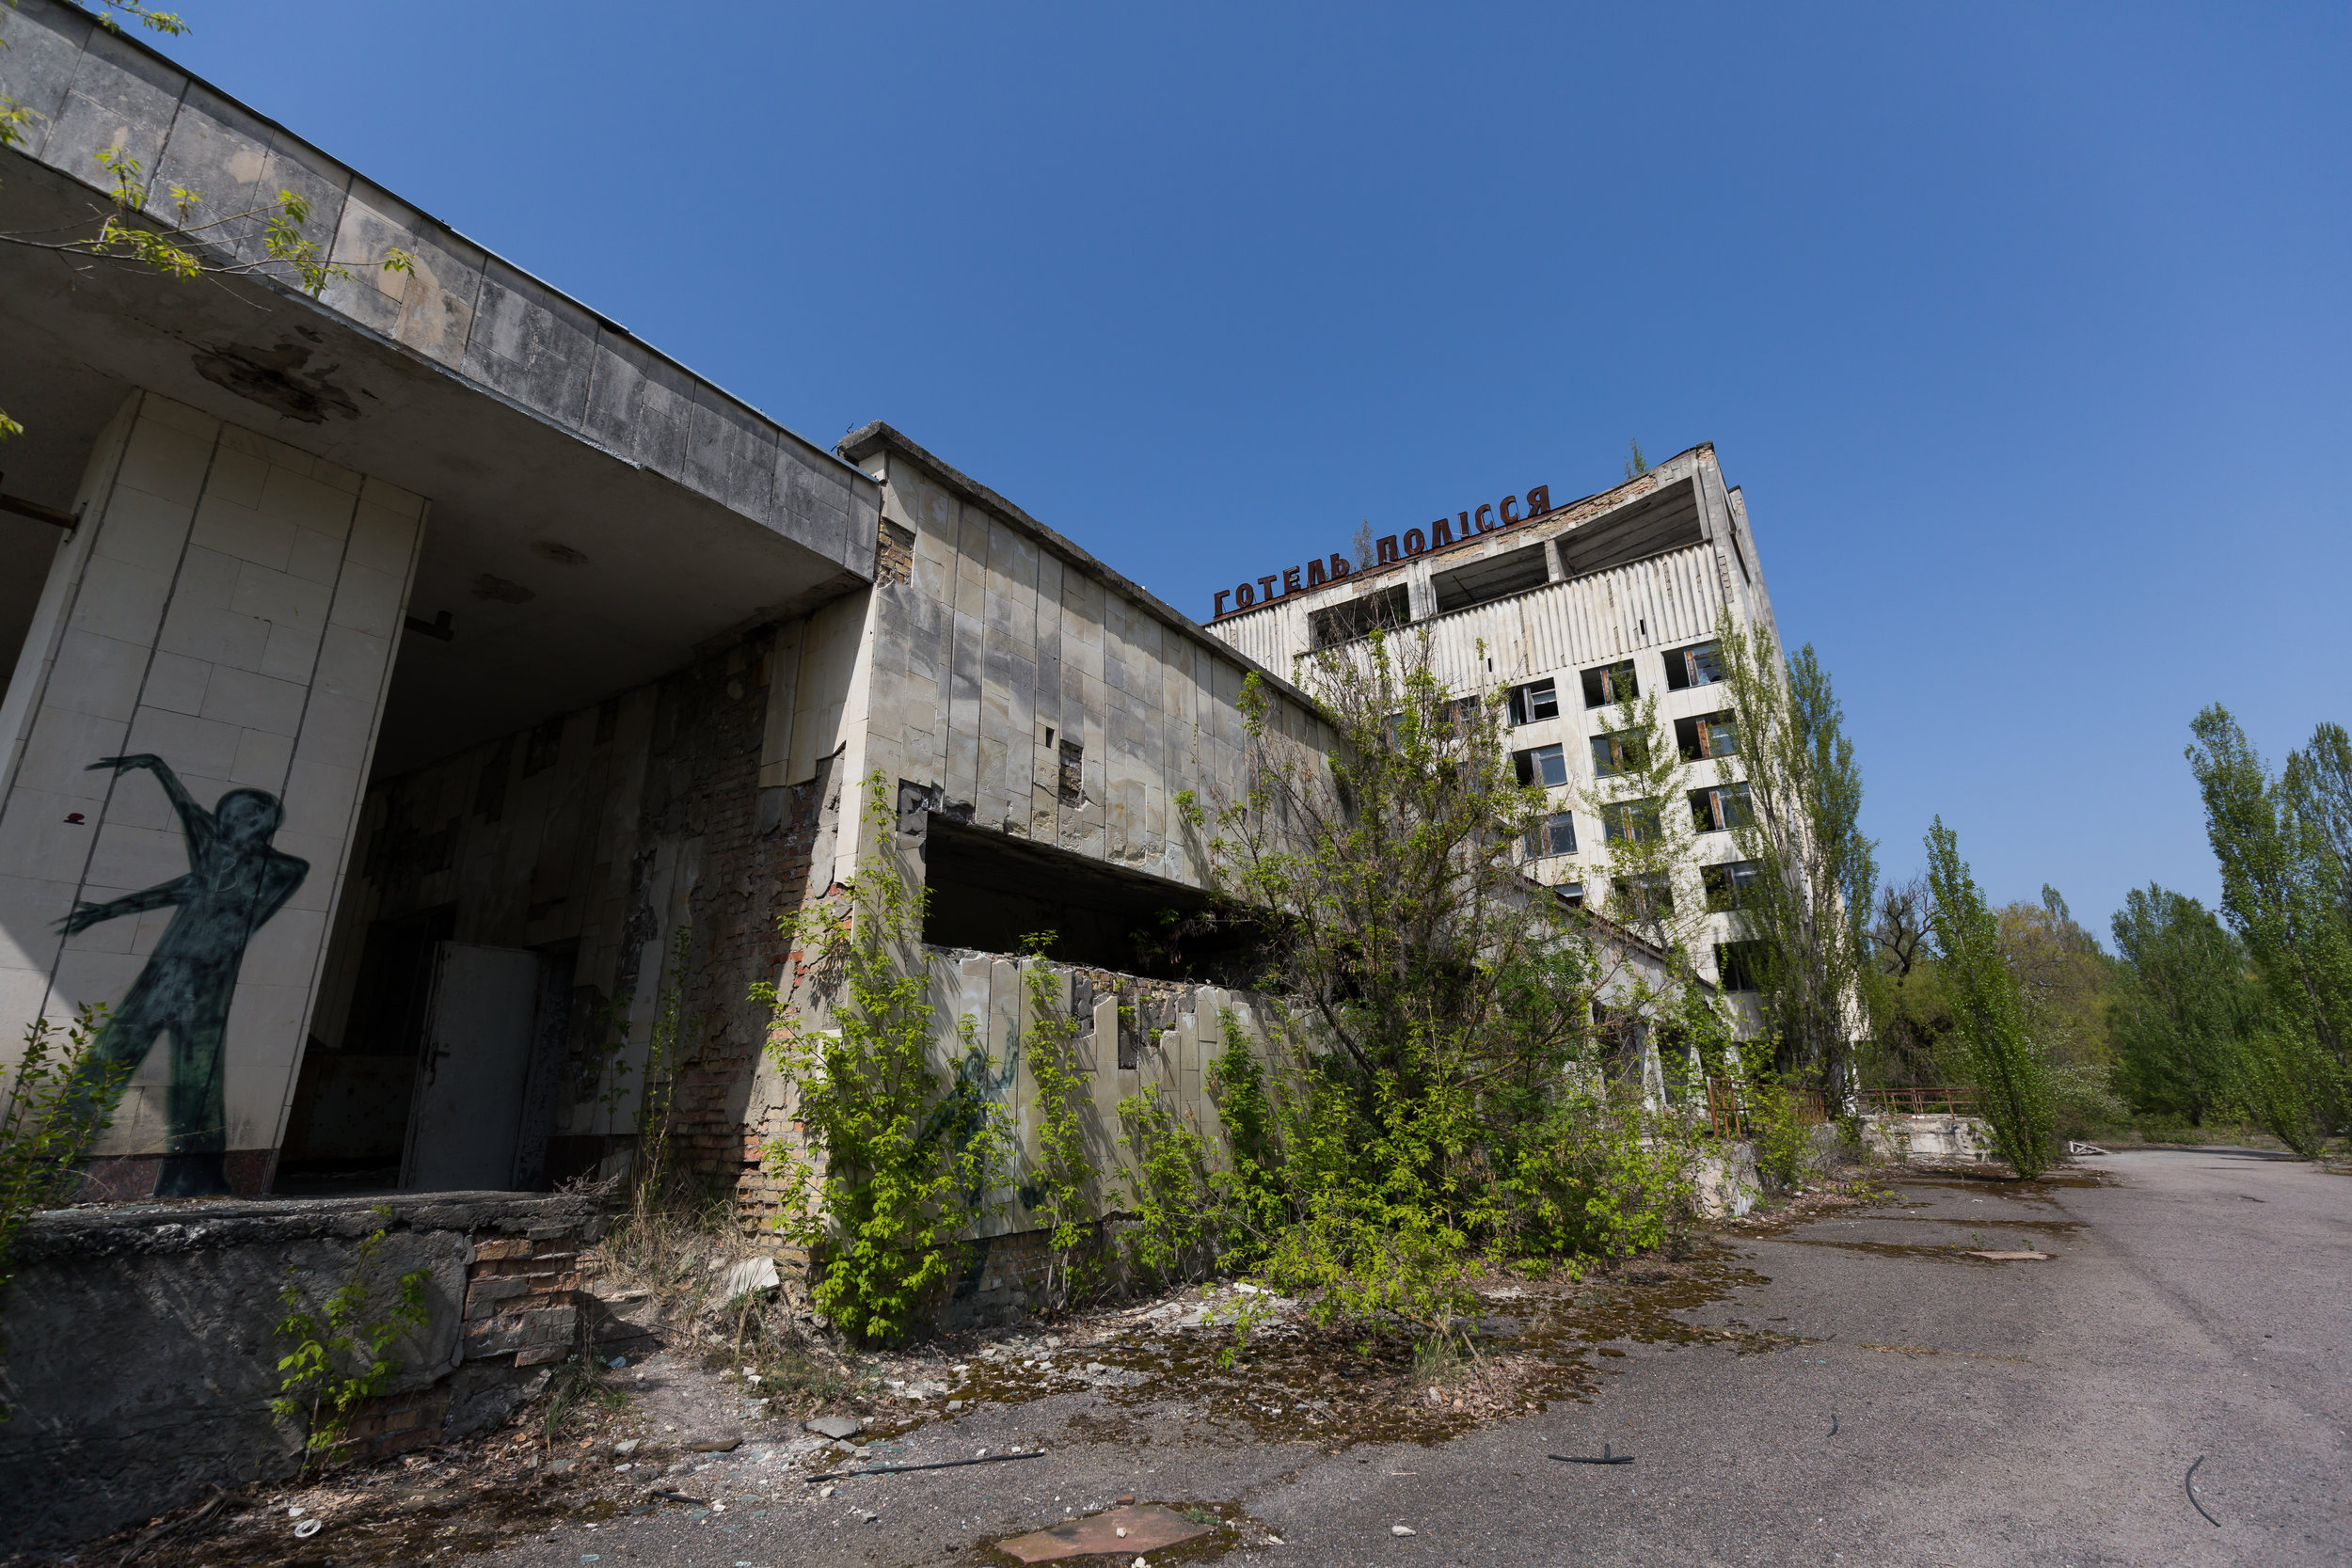 The famous Polissya hotel, one of the tallest buildings in Pripyat. It was built in the mid 1970s to house guests and delegations who were to visit the Chernobyl Nuclear Power Plant.